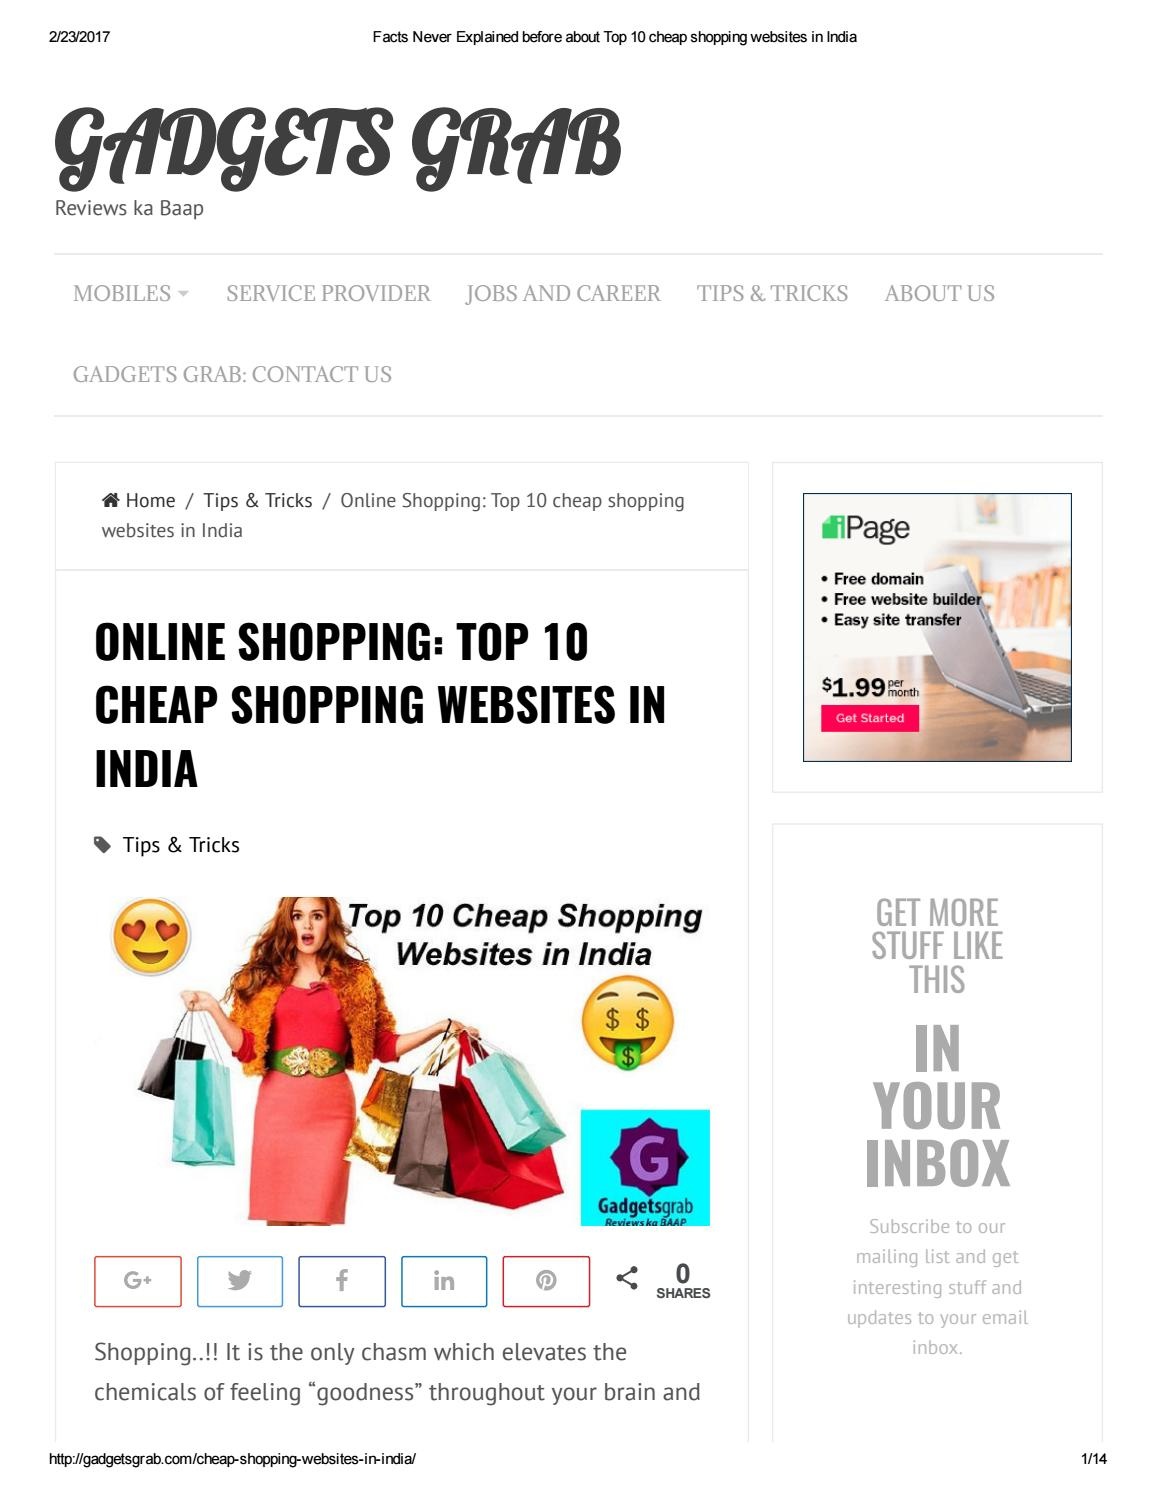 facts never explained before about top 10 cheap shopping